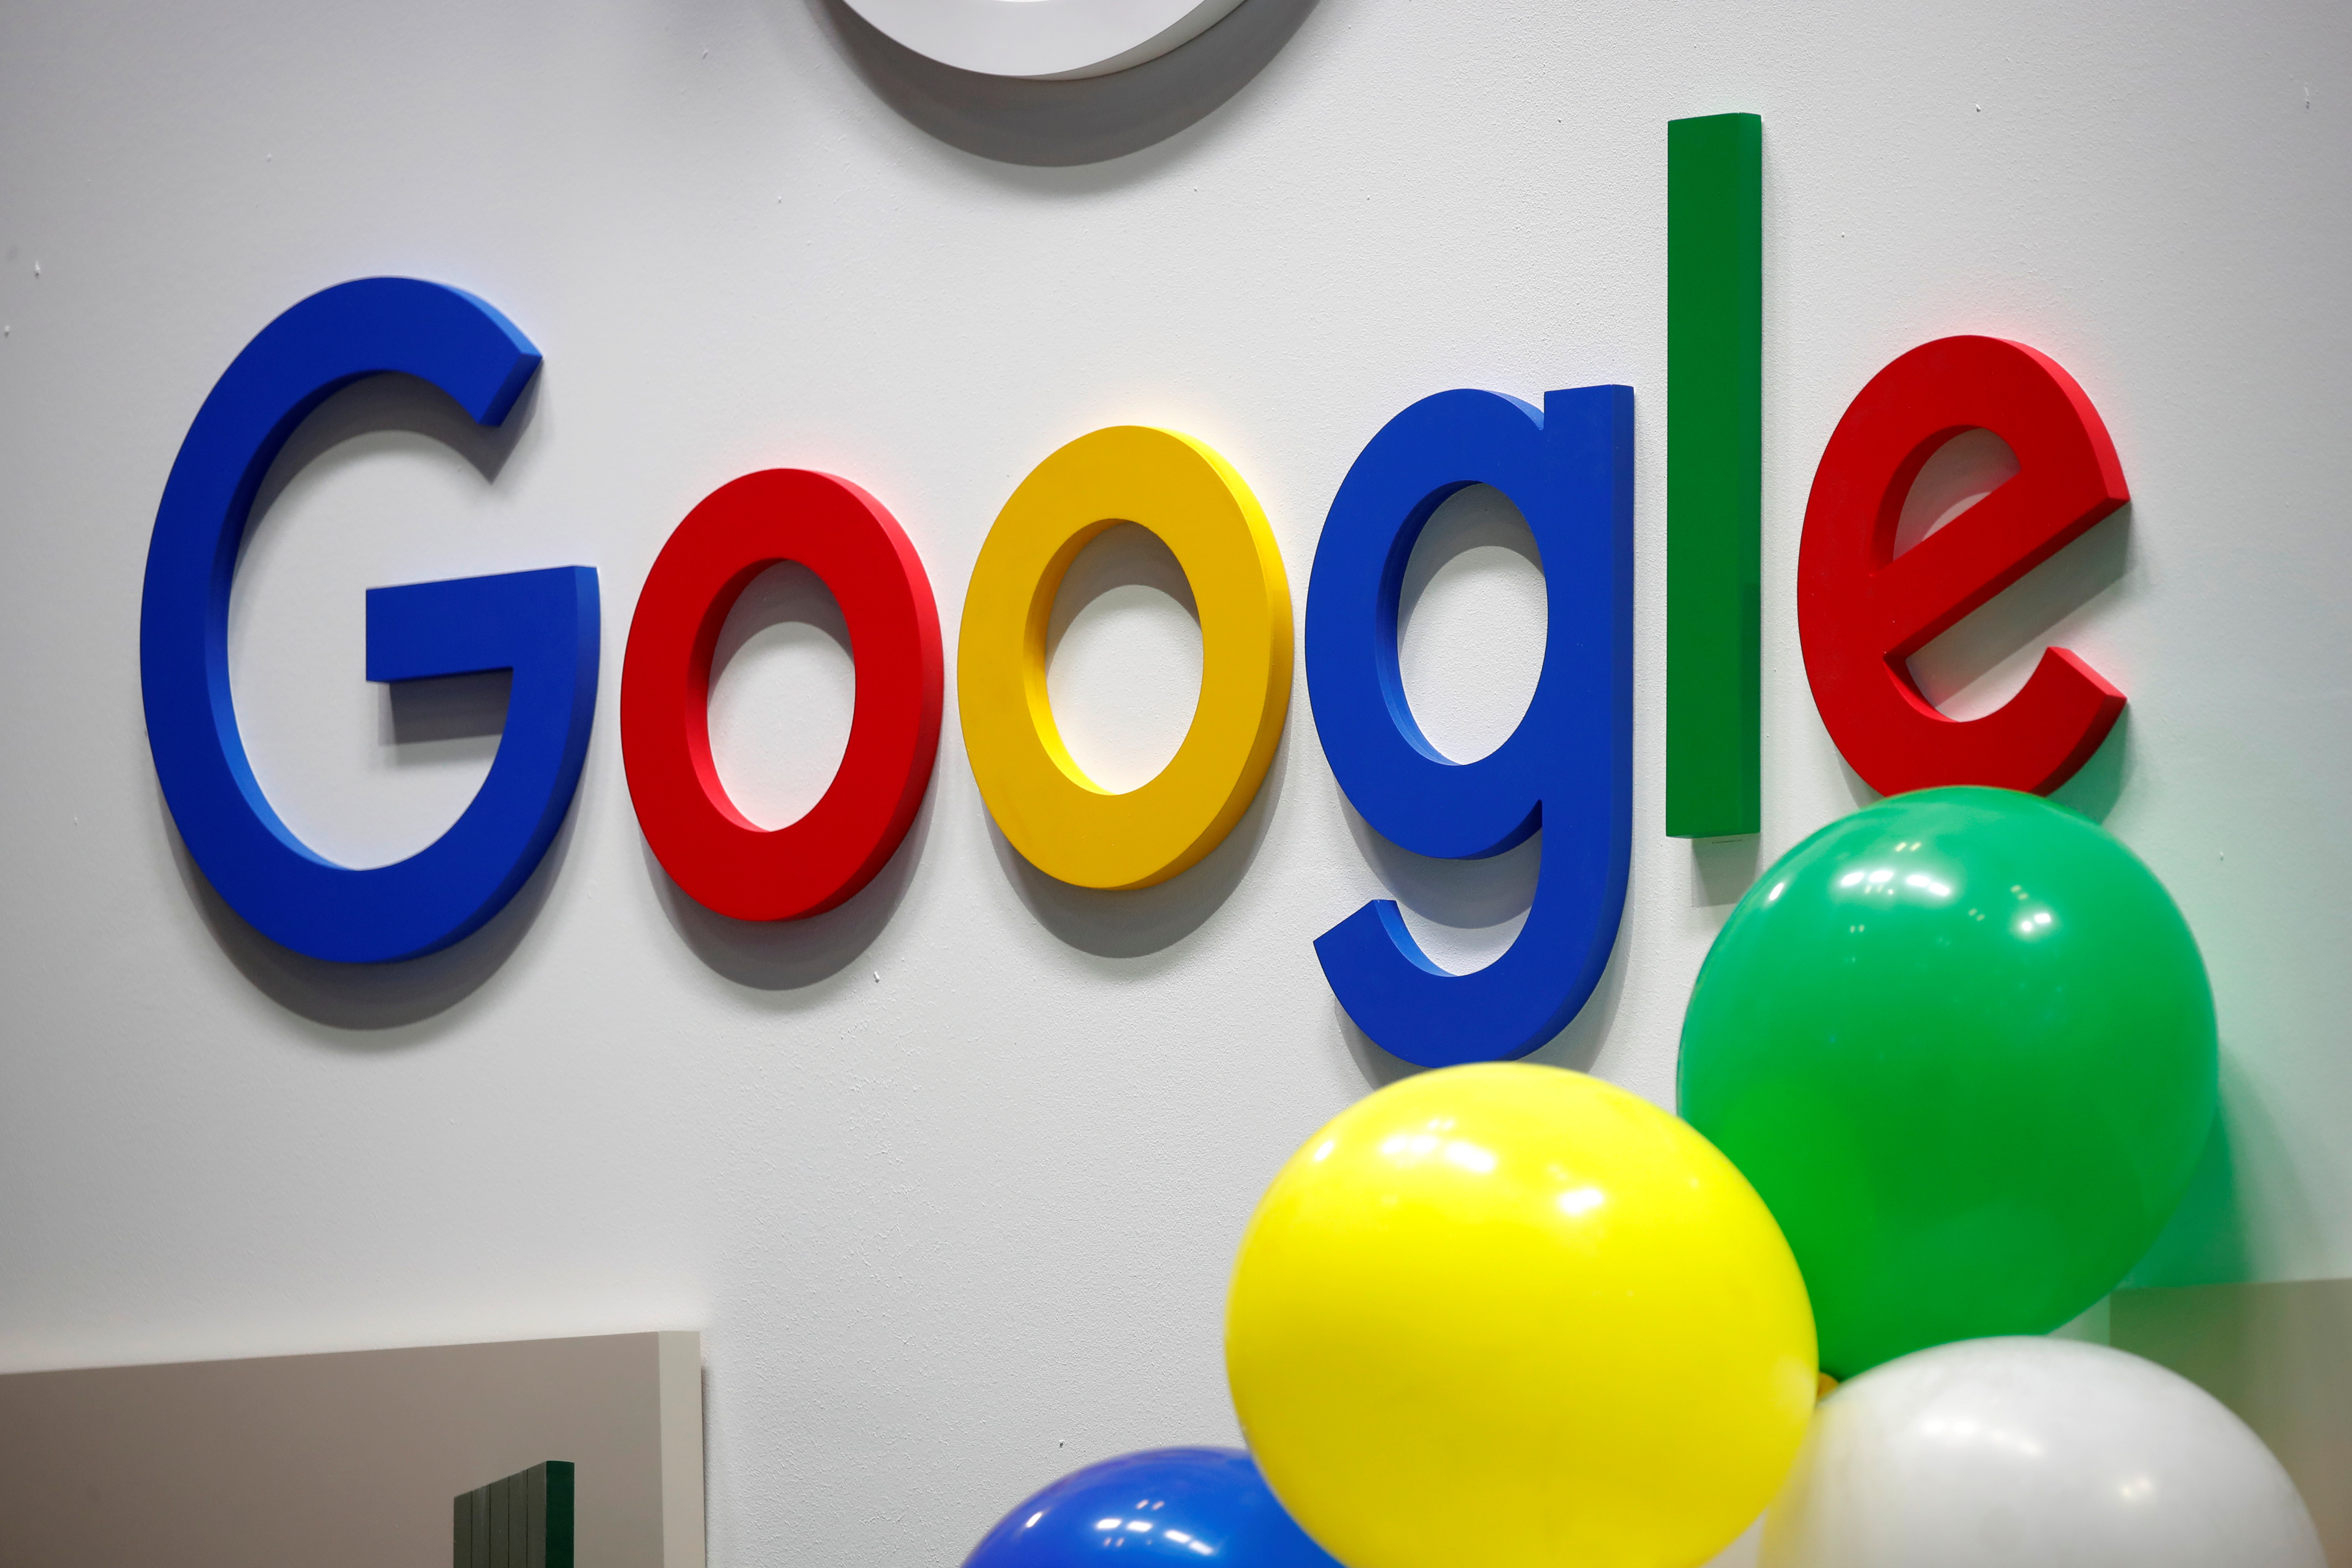 The logo of Google is seen at the high profile startups and high tech leaders gathering, Viva Tech,in Paris, France May 16, 2019. REUTERS/Charles Platiau/File Photo